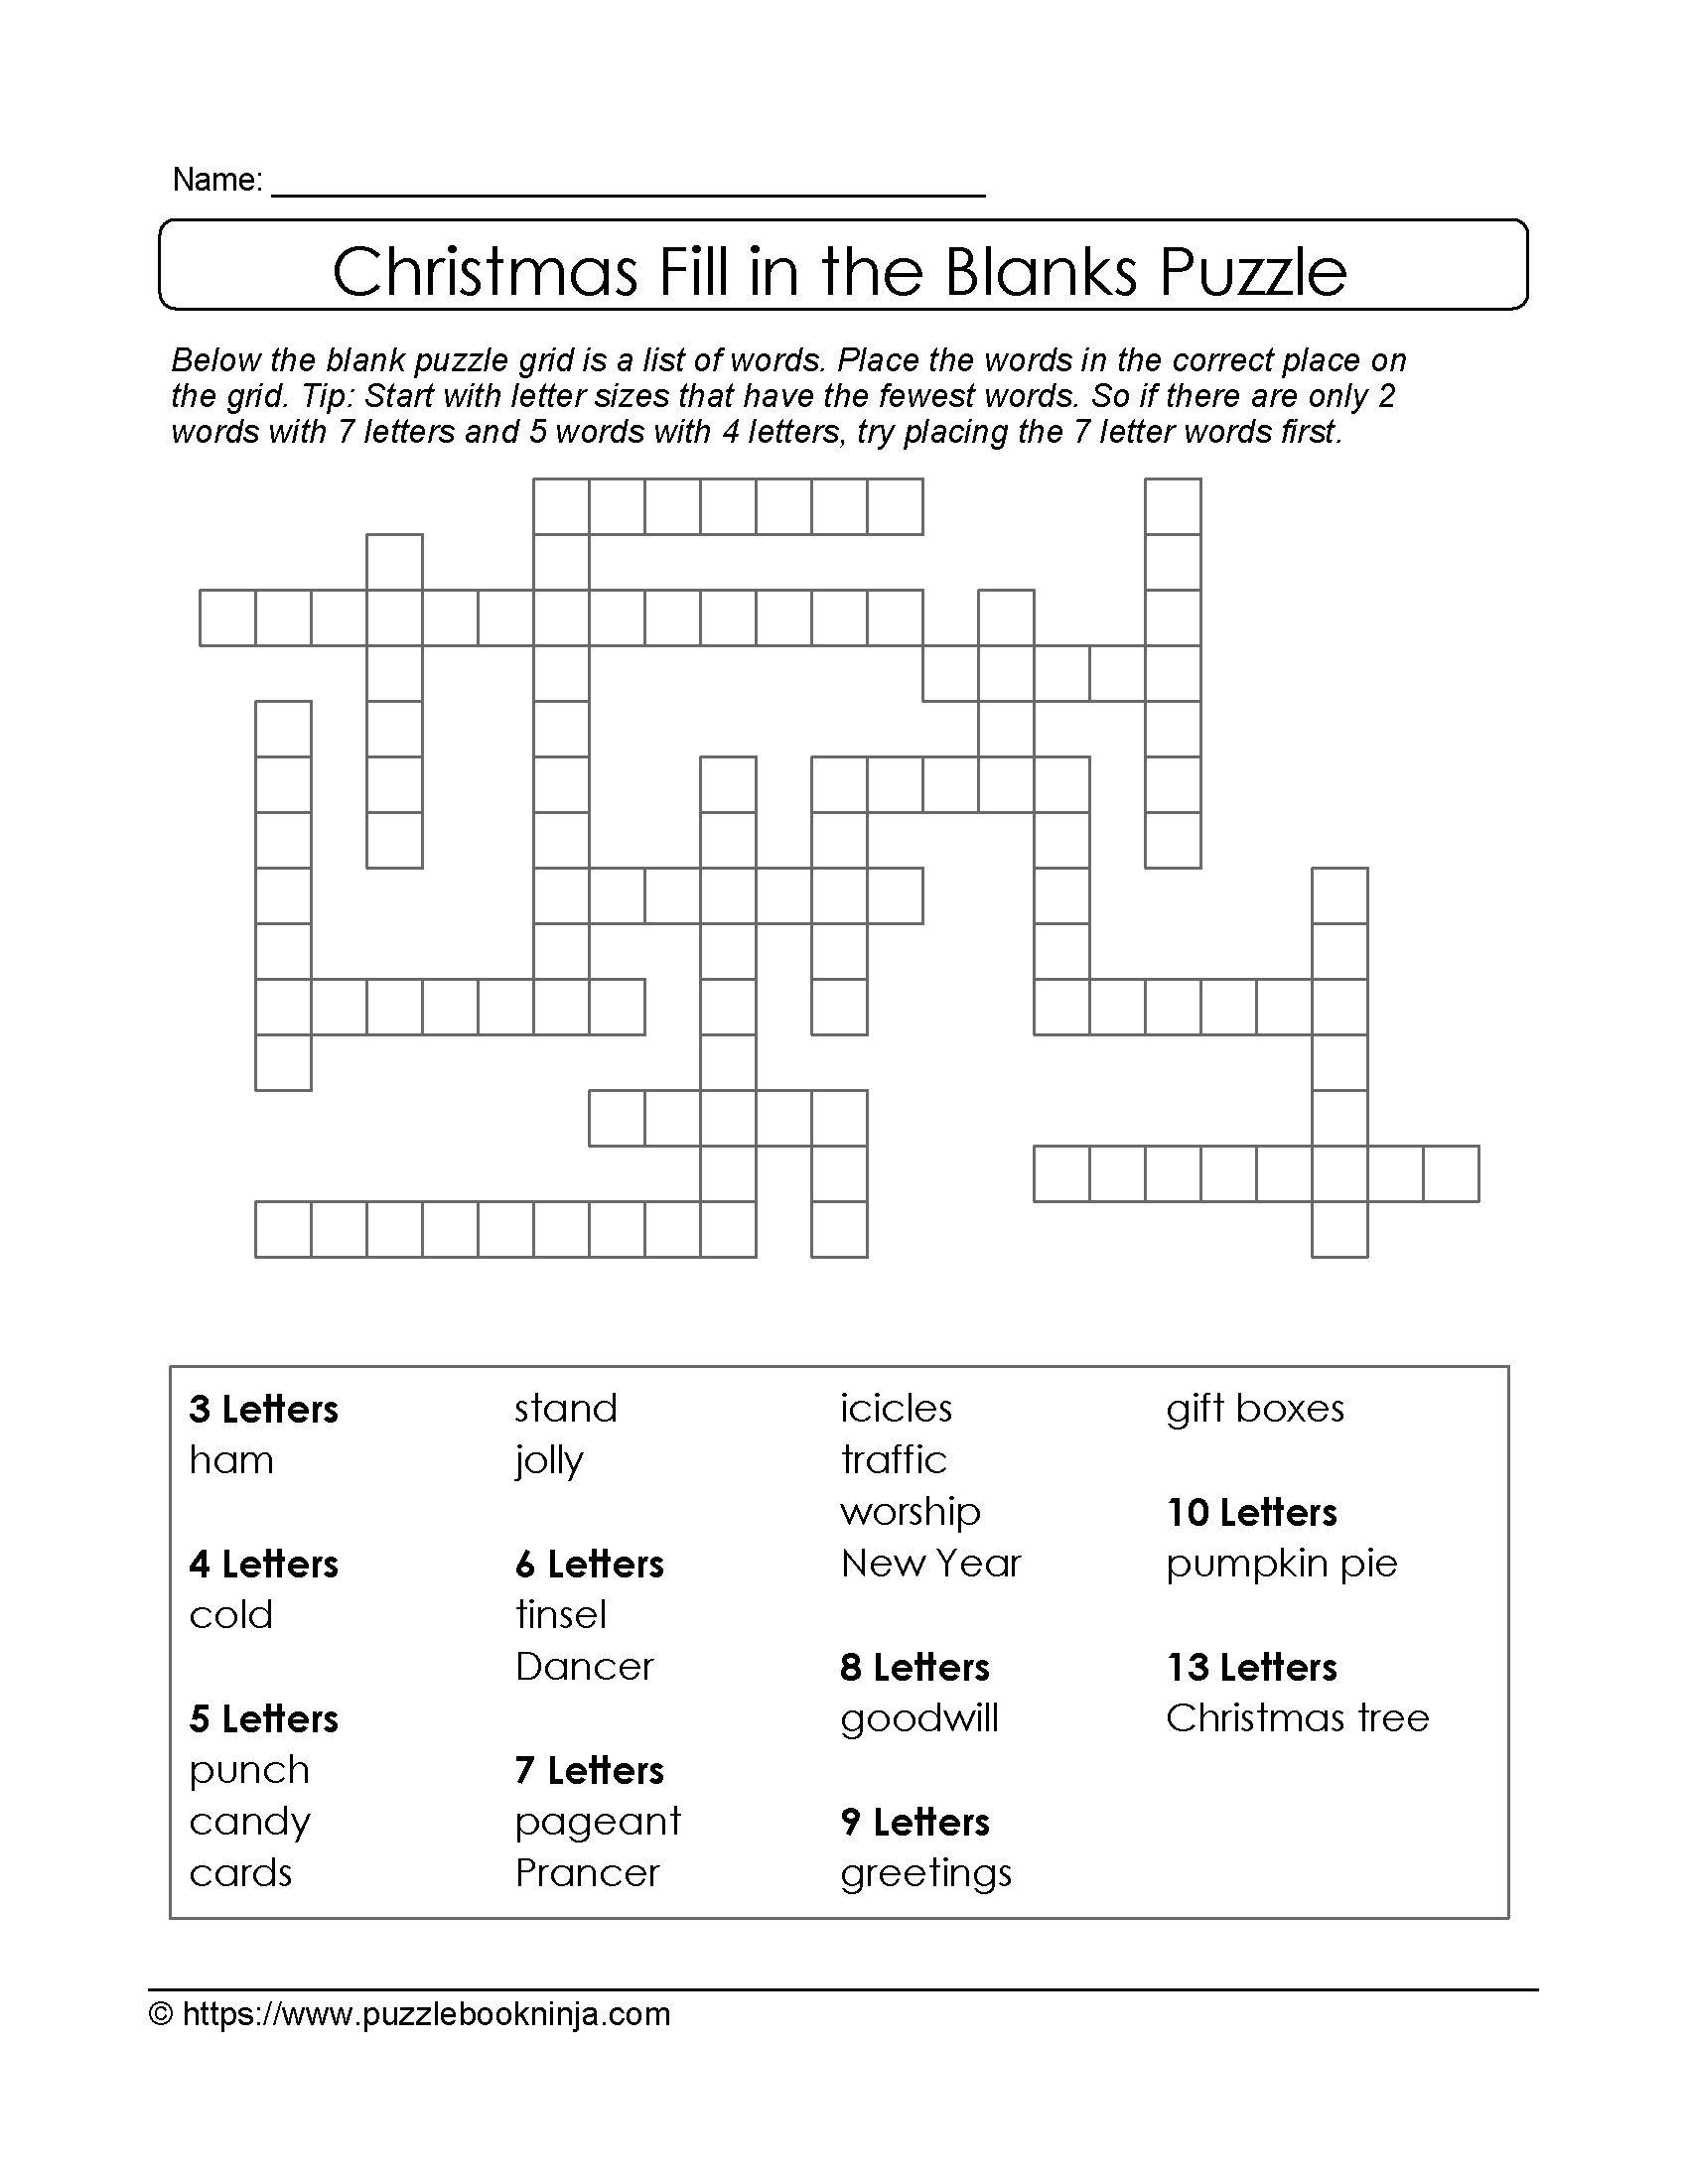 Freebie Xmas Puzzle To Print. Fill In The Blanks Crossword Like - Printable Blank Crossword Puzzles